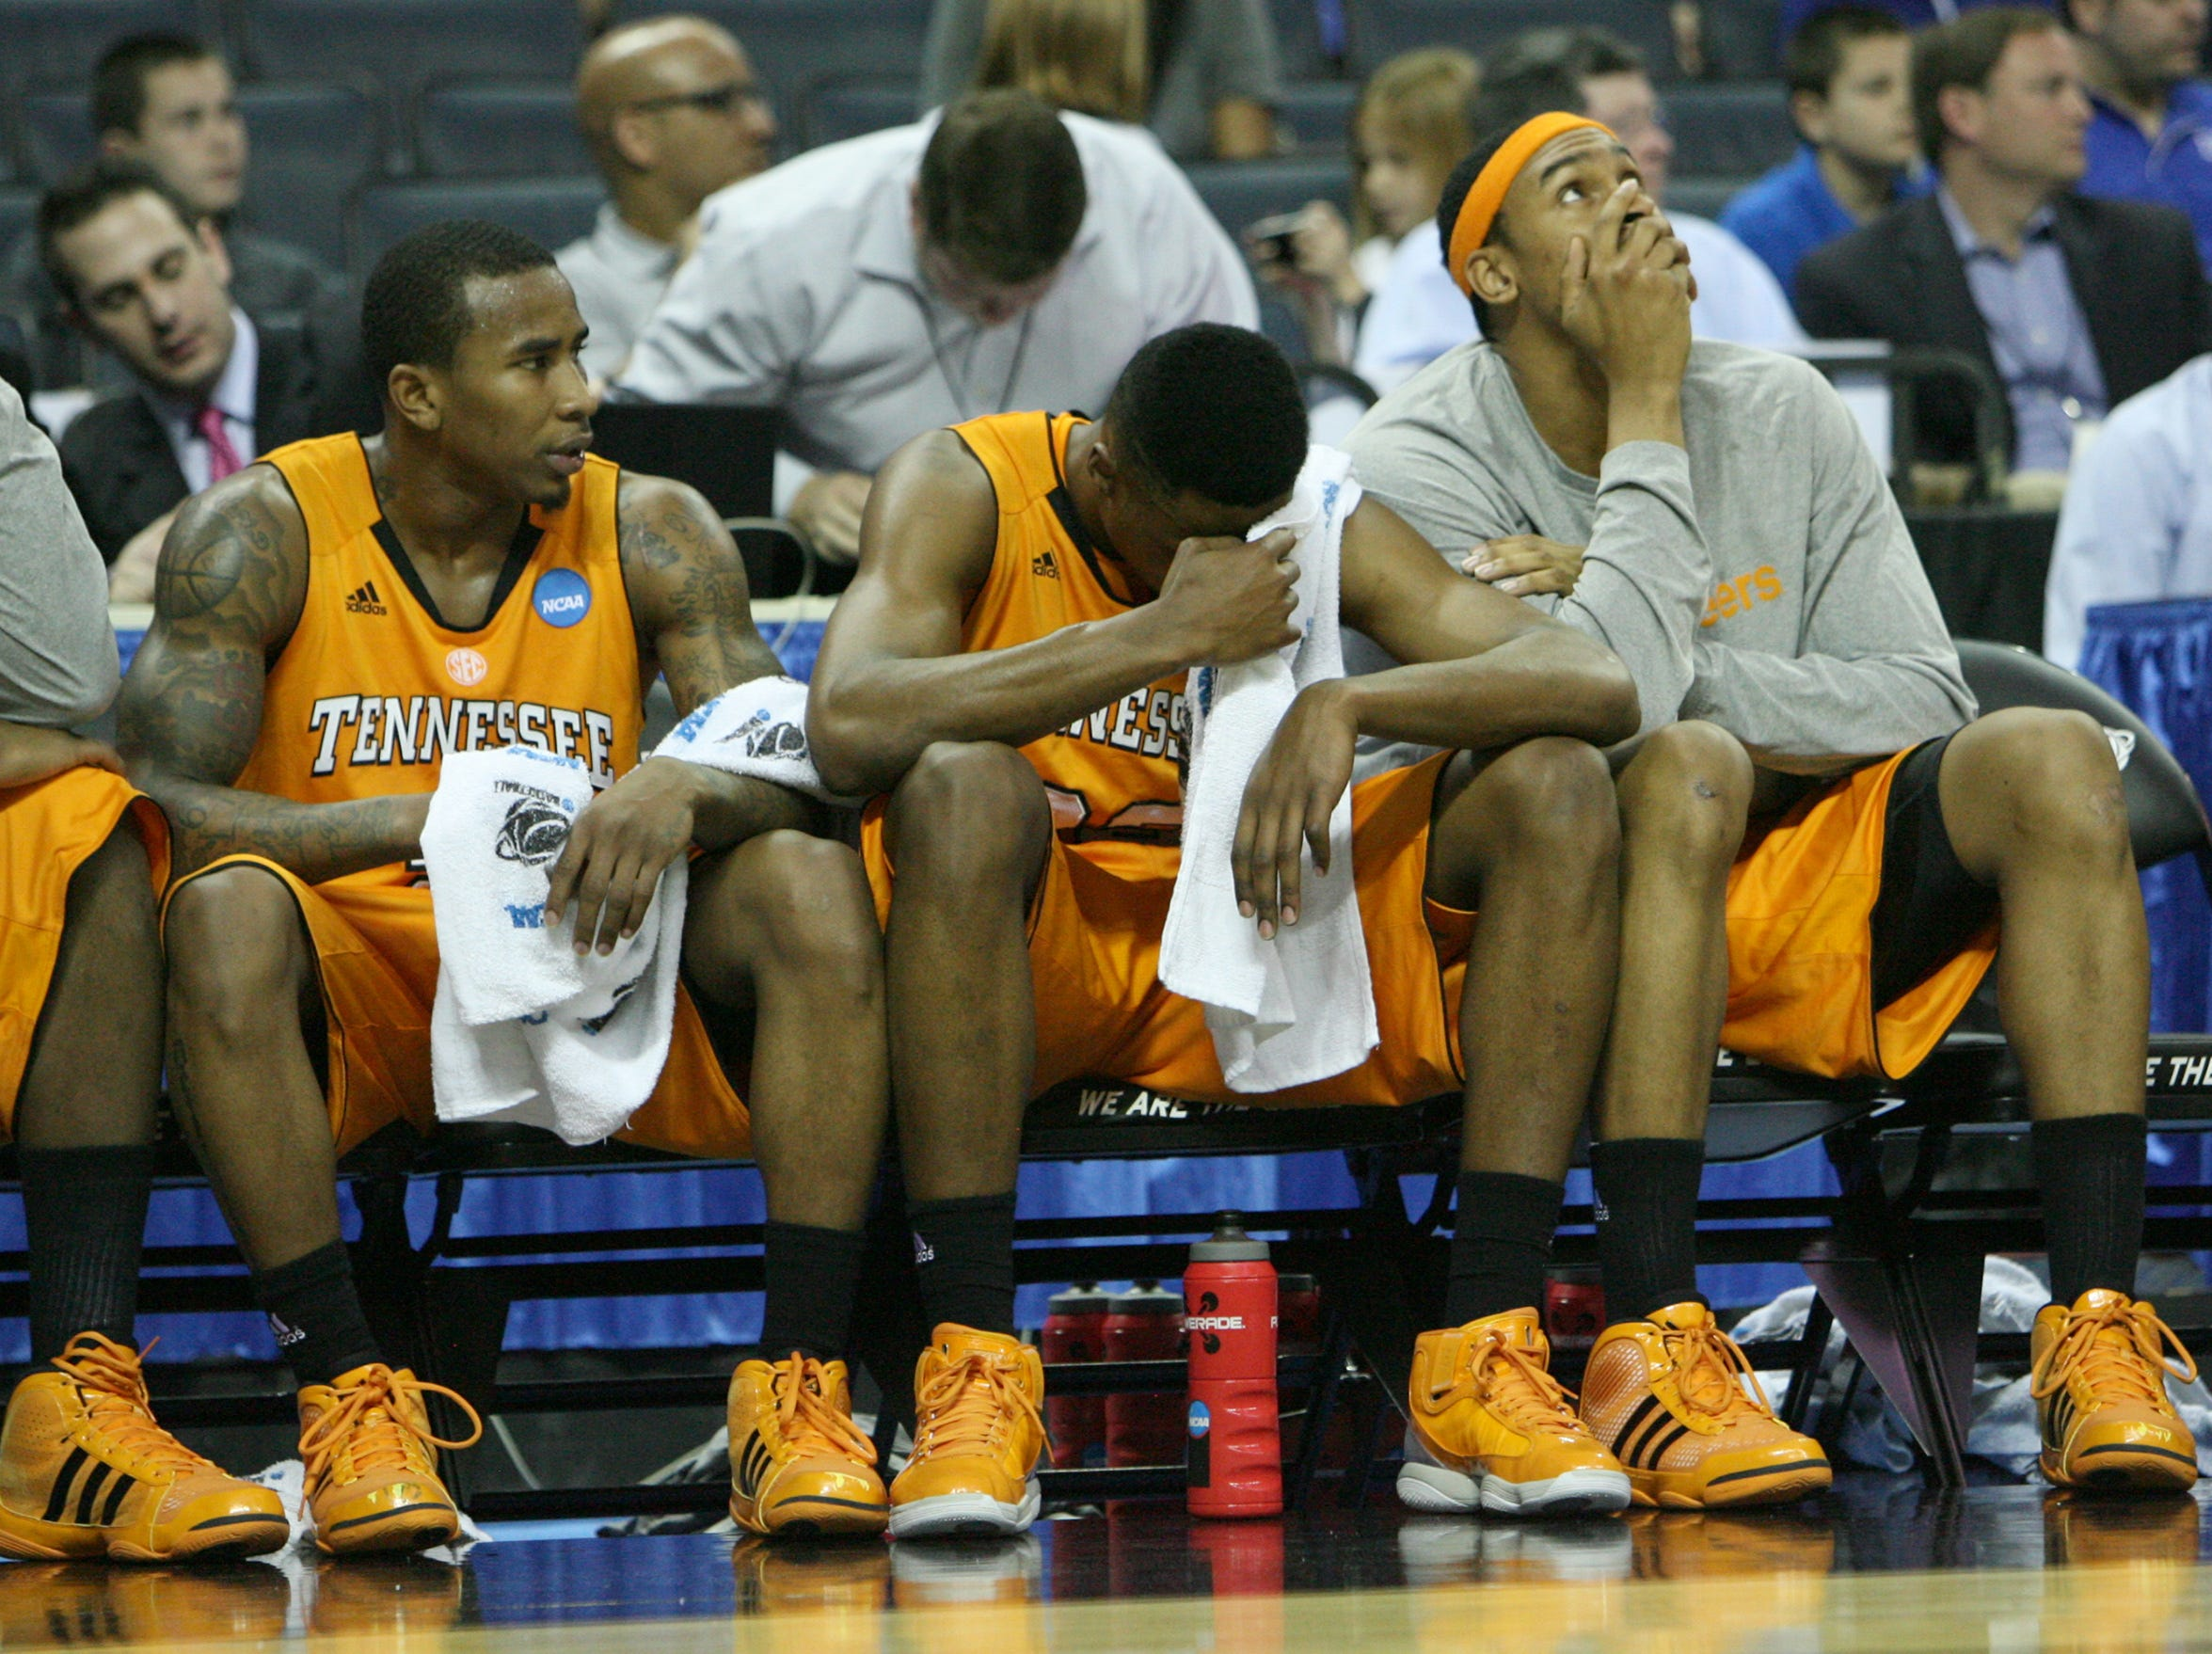 Tennessee's Melvin Goins, Scotty Hopson and John Fields, left to right, look on as the Vols play the Michigan Wolverines during the second round of the NCAA Tournament at Time Warner Cable Arena in Charlotte, N.C. Friday, March 18, 2011.  The Wolverines defeated the Vols 75-45 knocking them out of the tournament.